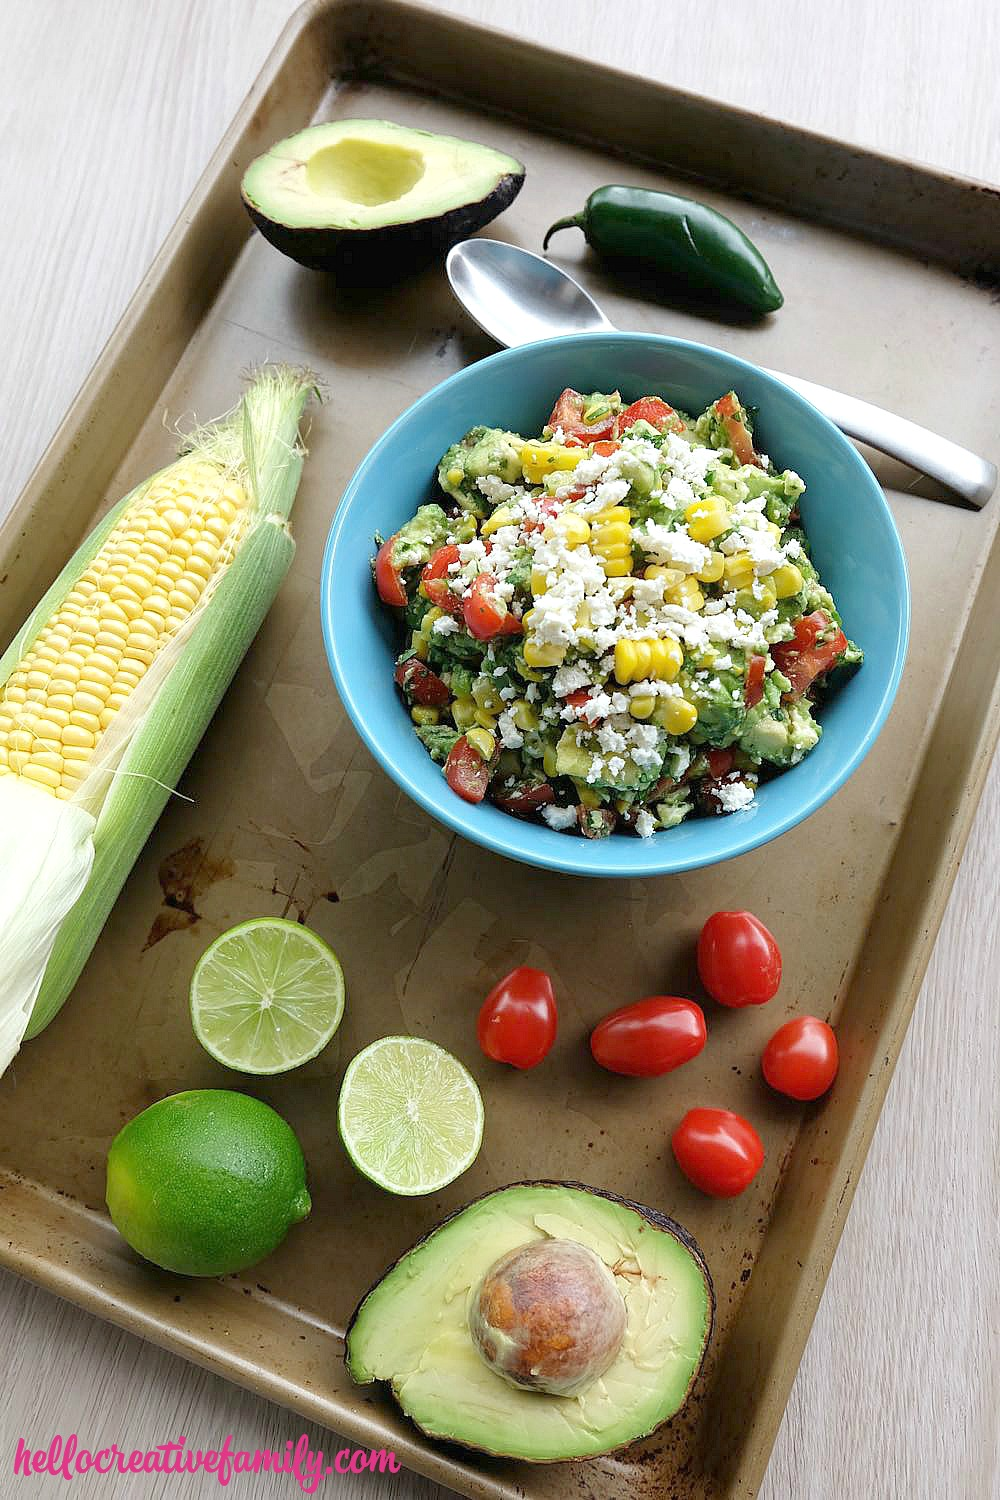 With a bit of heat, a dash of sweet and sour, a sprinkle of salty and a lovely creaminess from the avocado, this recipe is sure to be a hit with everyone who loves a good guacamole. Serve this festive sweet corn guacamole recipe with chips, burritos, fajitas, tacos and tamales or as a topping on chicken or fish!